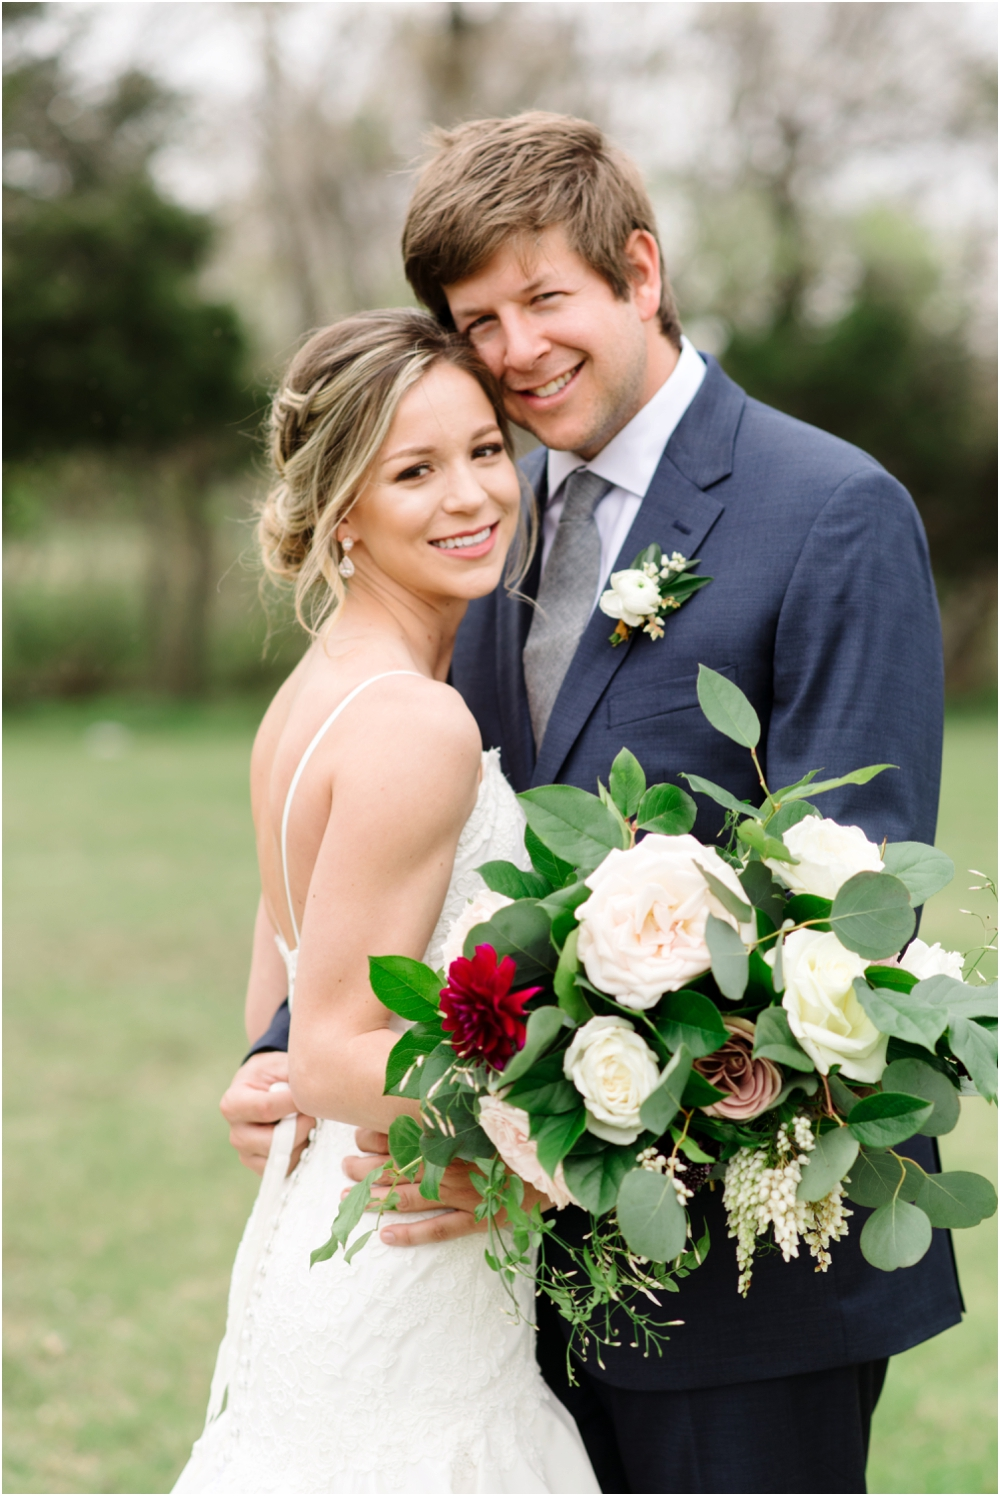 dallasweddingphotographer_texasweddingphotographer_texasweddingphotographers_dallasweddingphotographer_mattandjulieweddings_0672.jpg